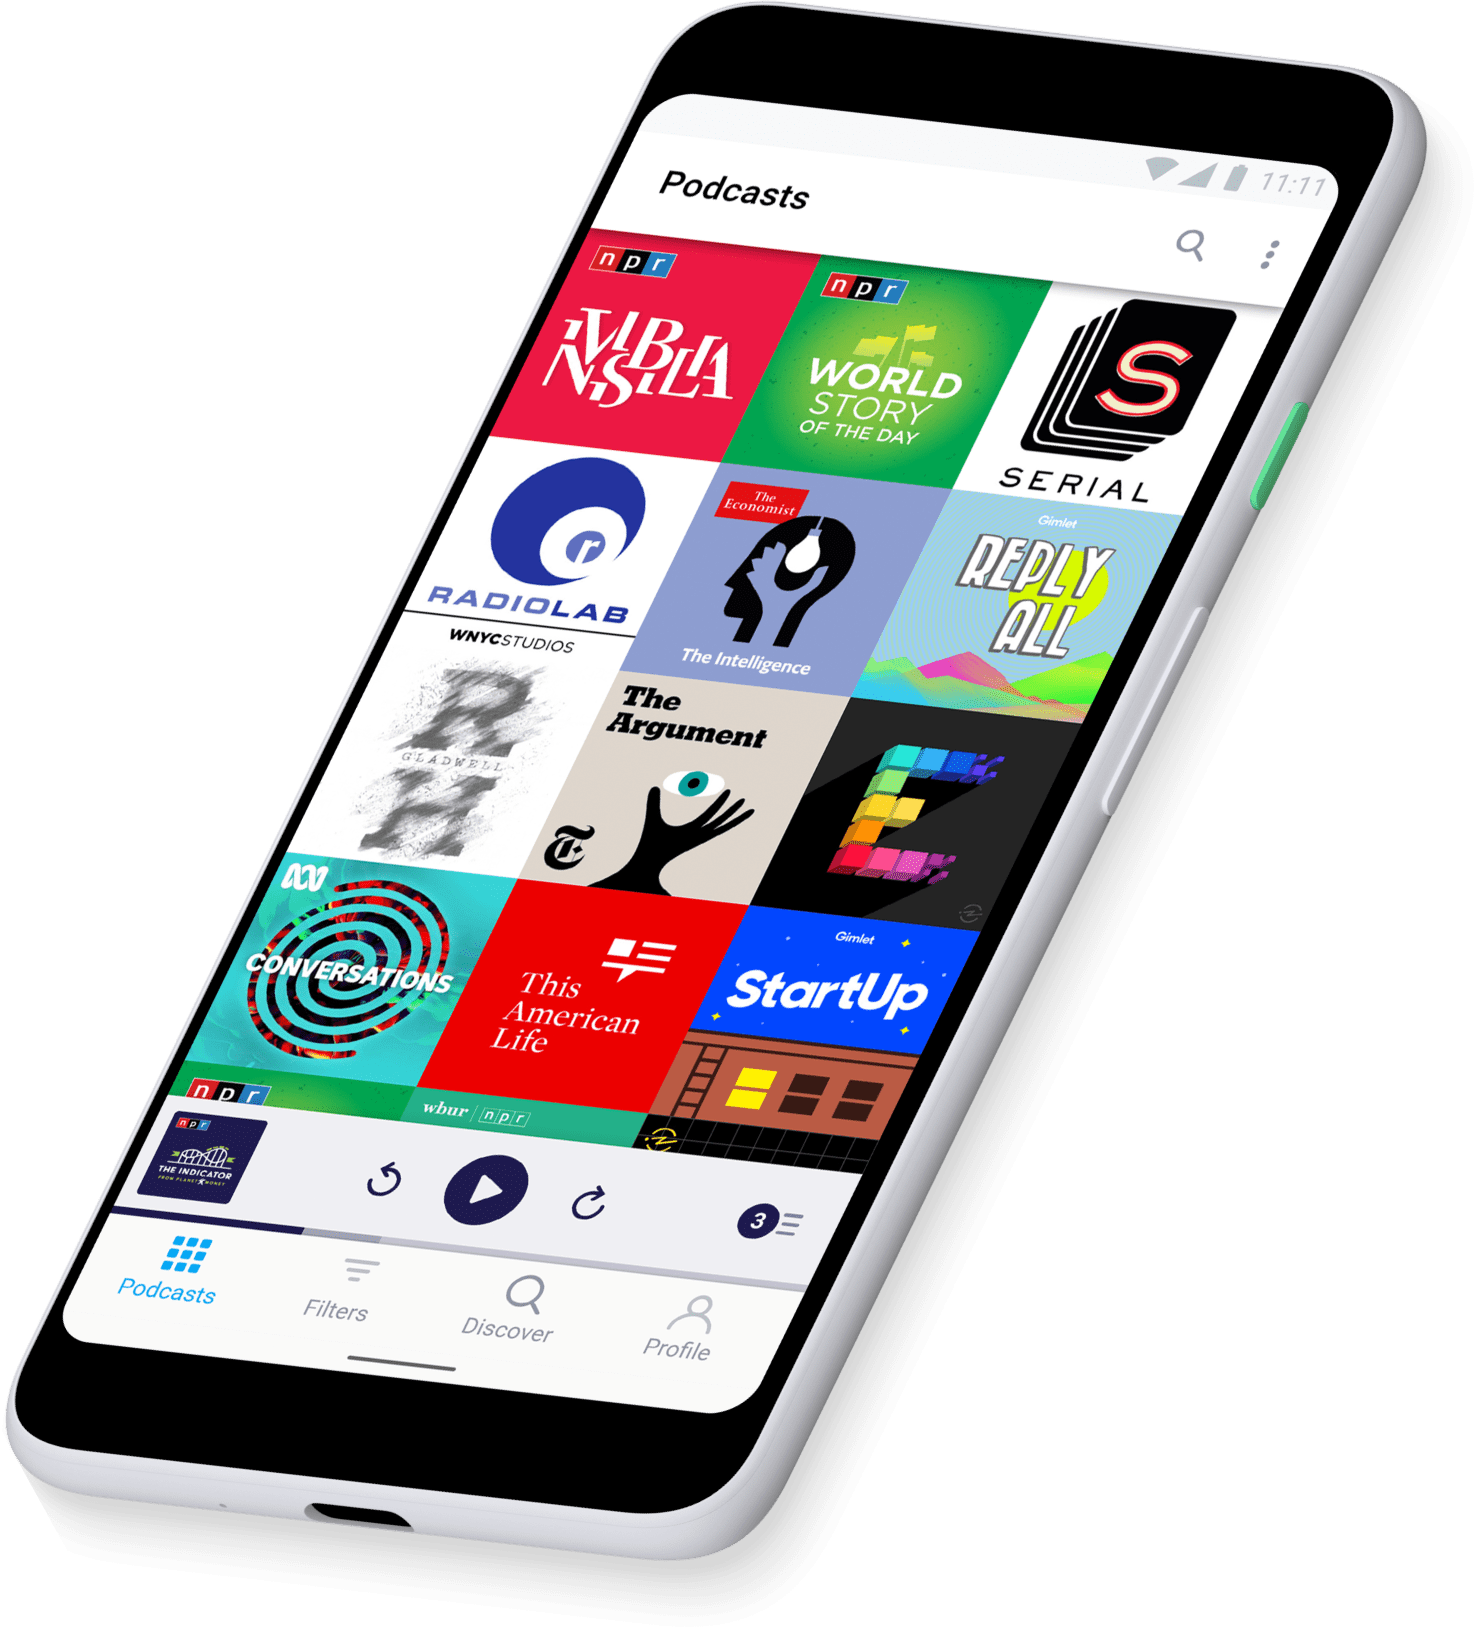 Pocket Casts comes plenty of options to manage your podcasts